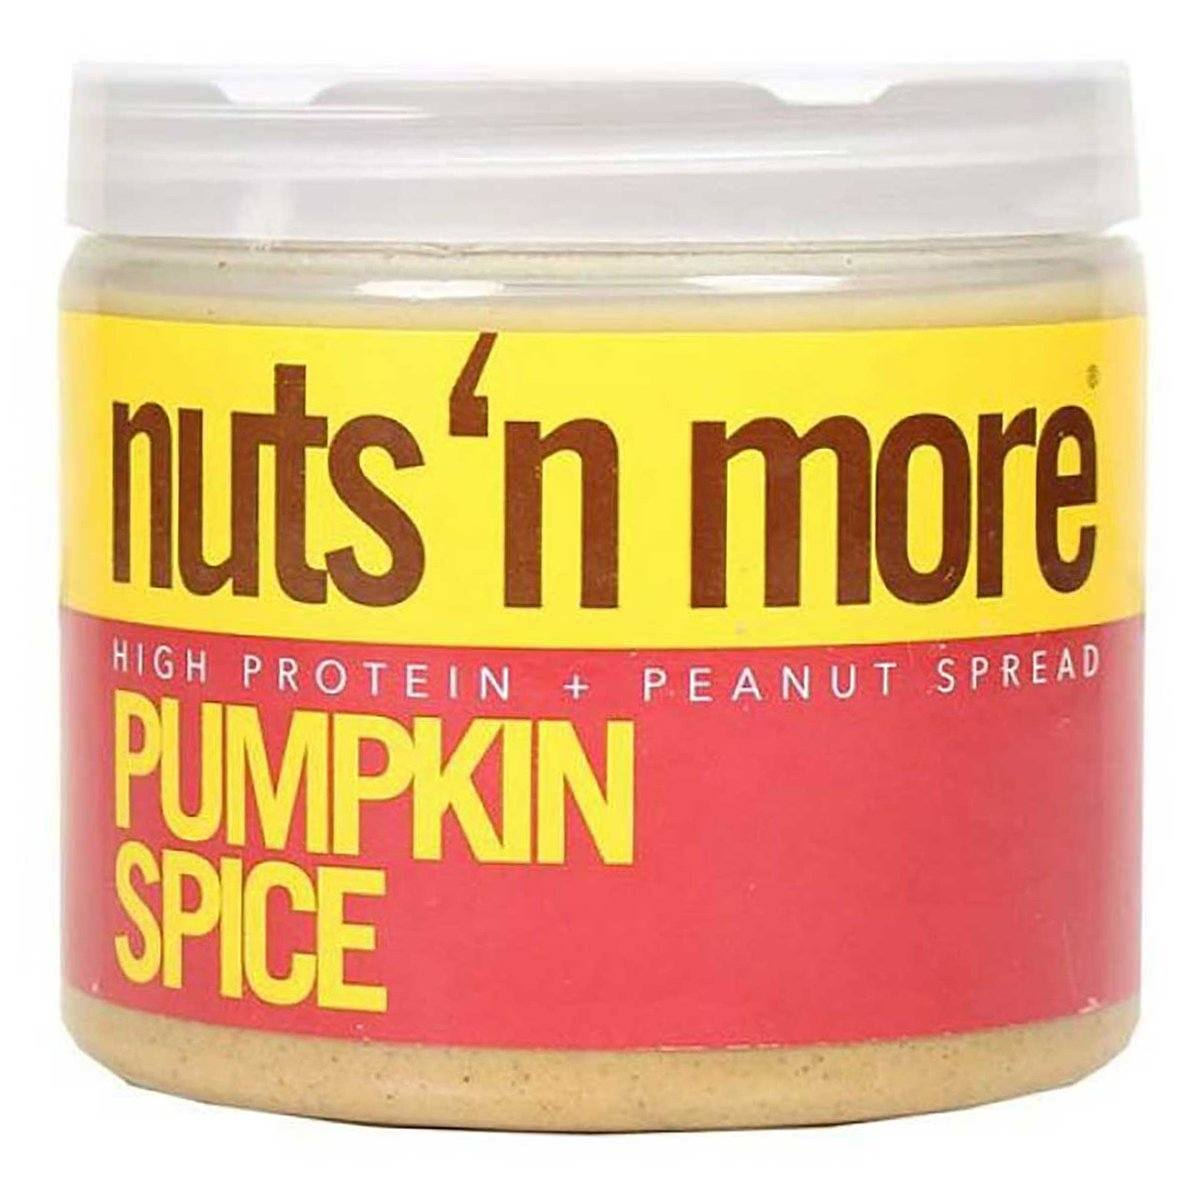 Nuts 'N More Pumpkin Spice Peanut Butter 16 Oz Foods & Snacks Nuts 'N More  (1059254075435)